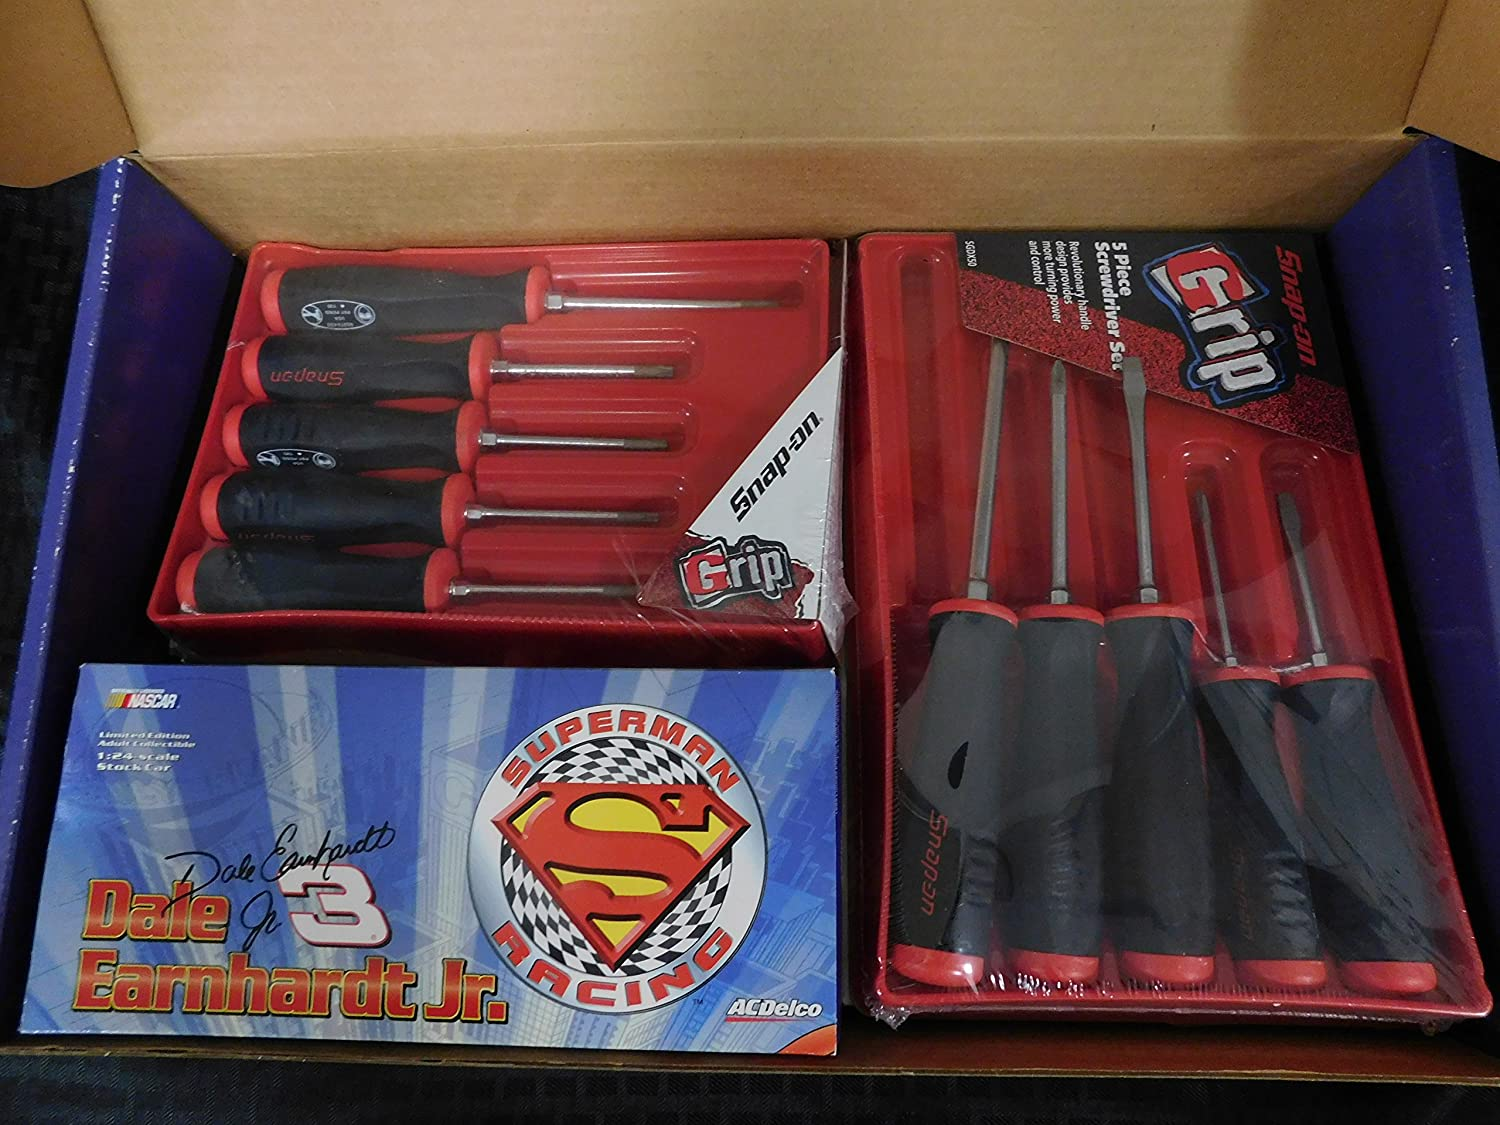 Snap-On Limited Edition Dale Earnhardt Jr. Set in 1999, 5 Piece Torx ...